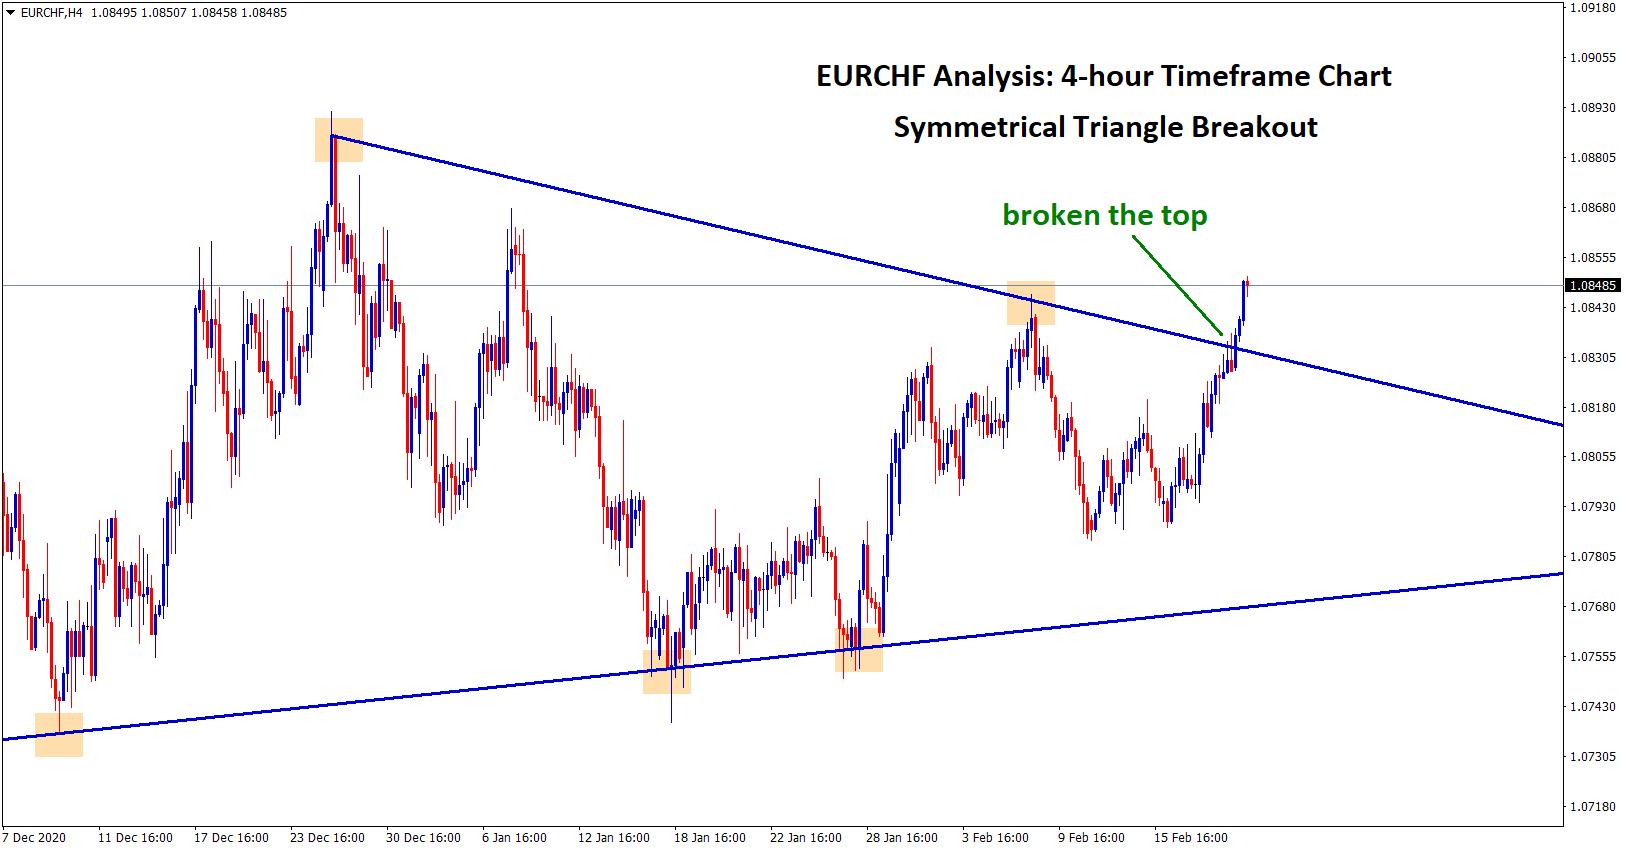 Symmetrical triangle breakout in eurchf currency pair